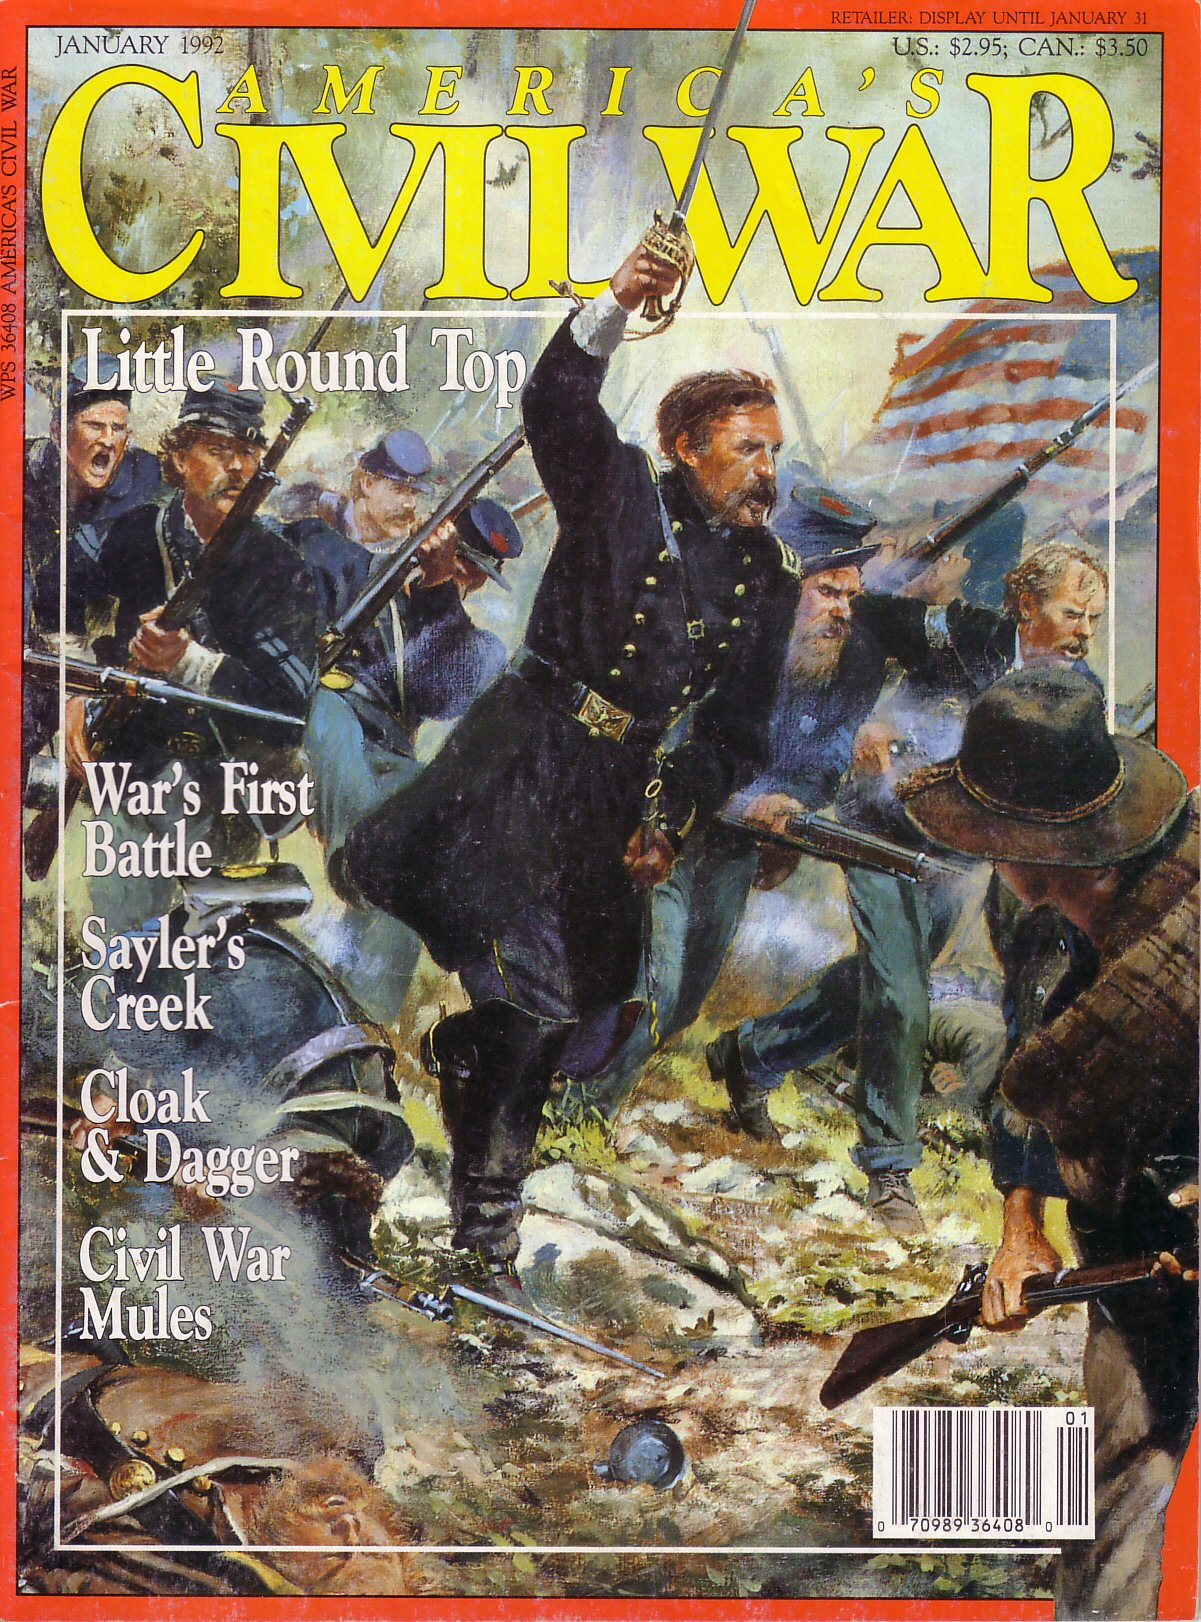 Americas Civil War Volume 4, Number 5 (January 1992)